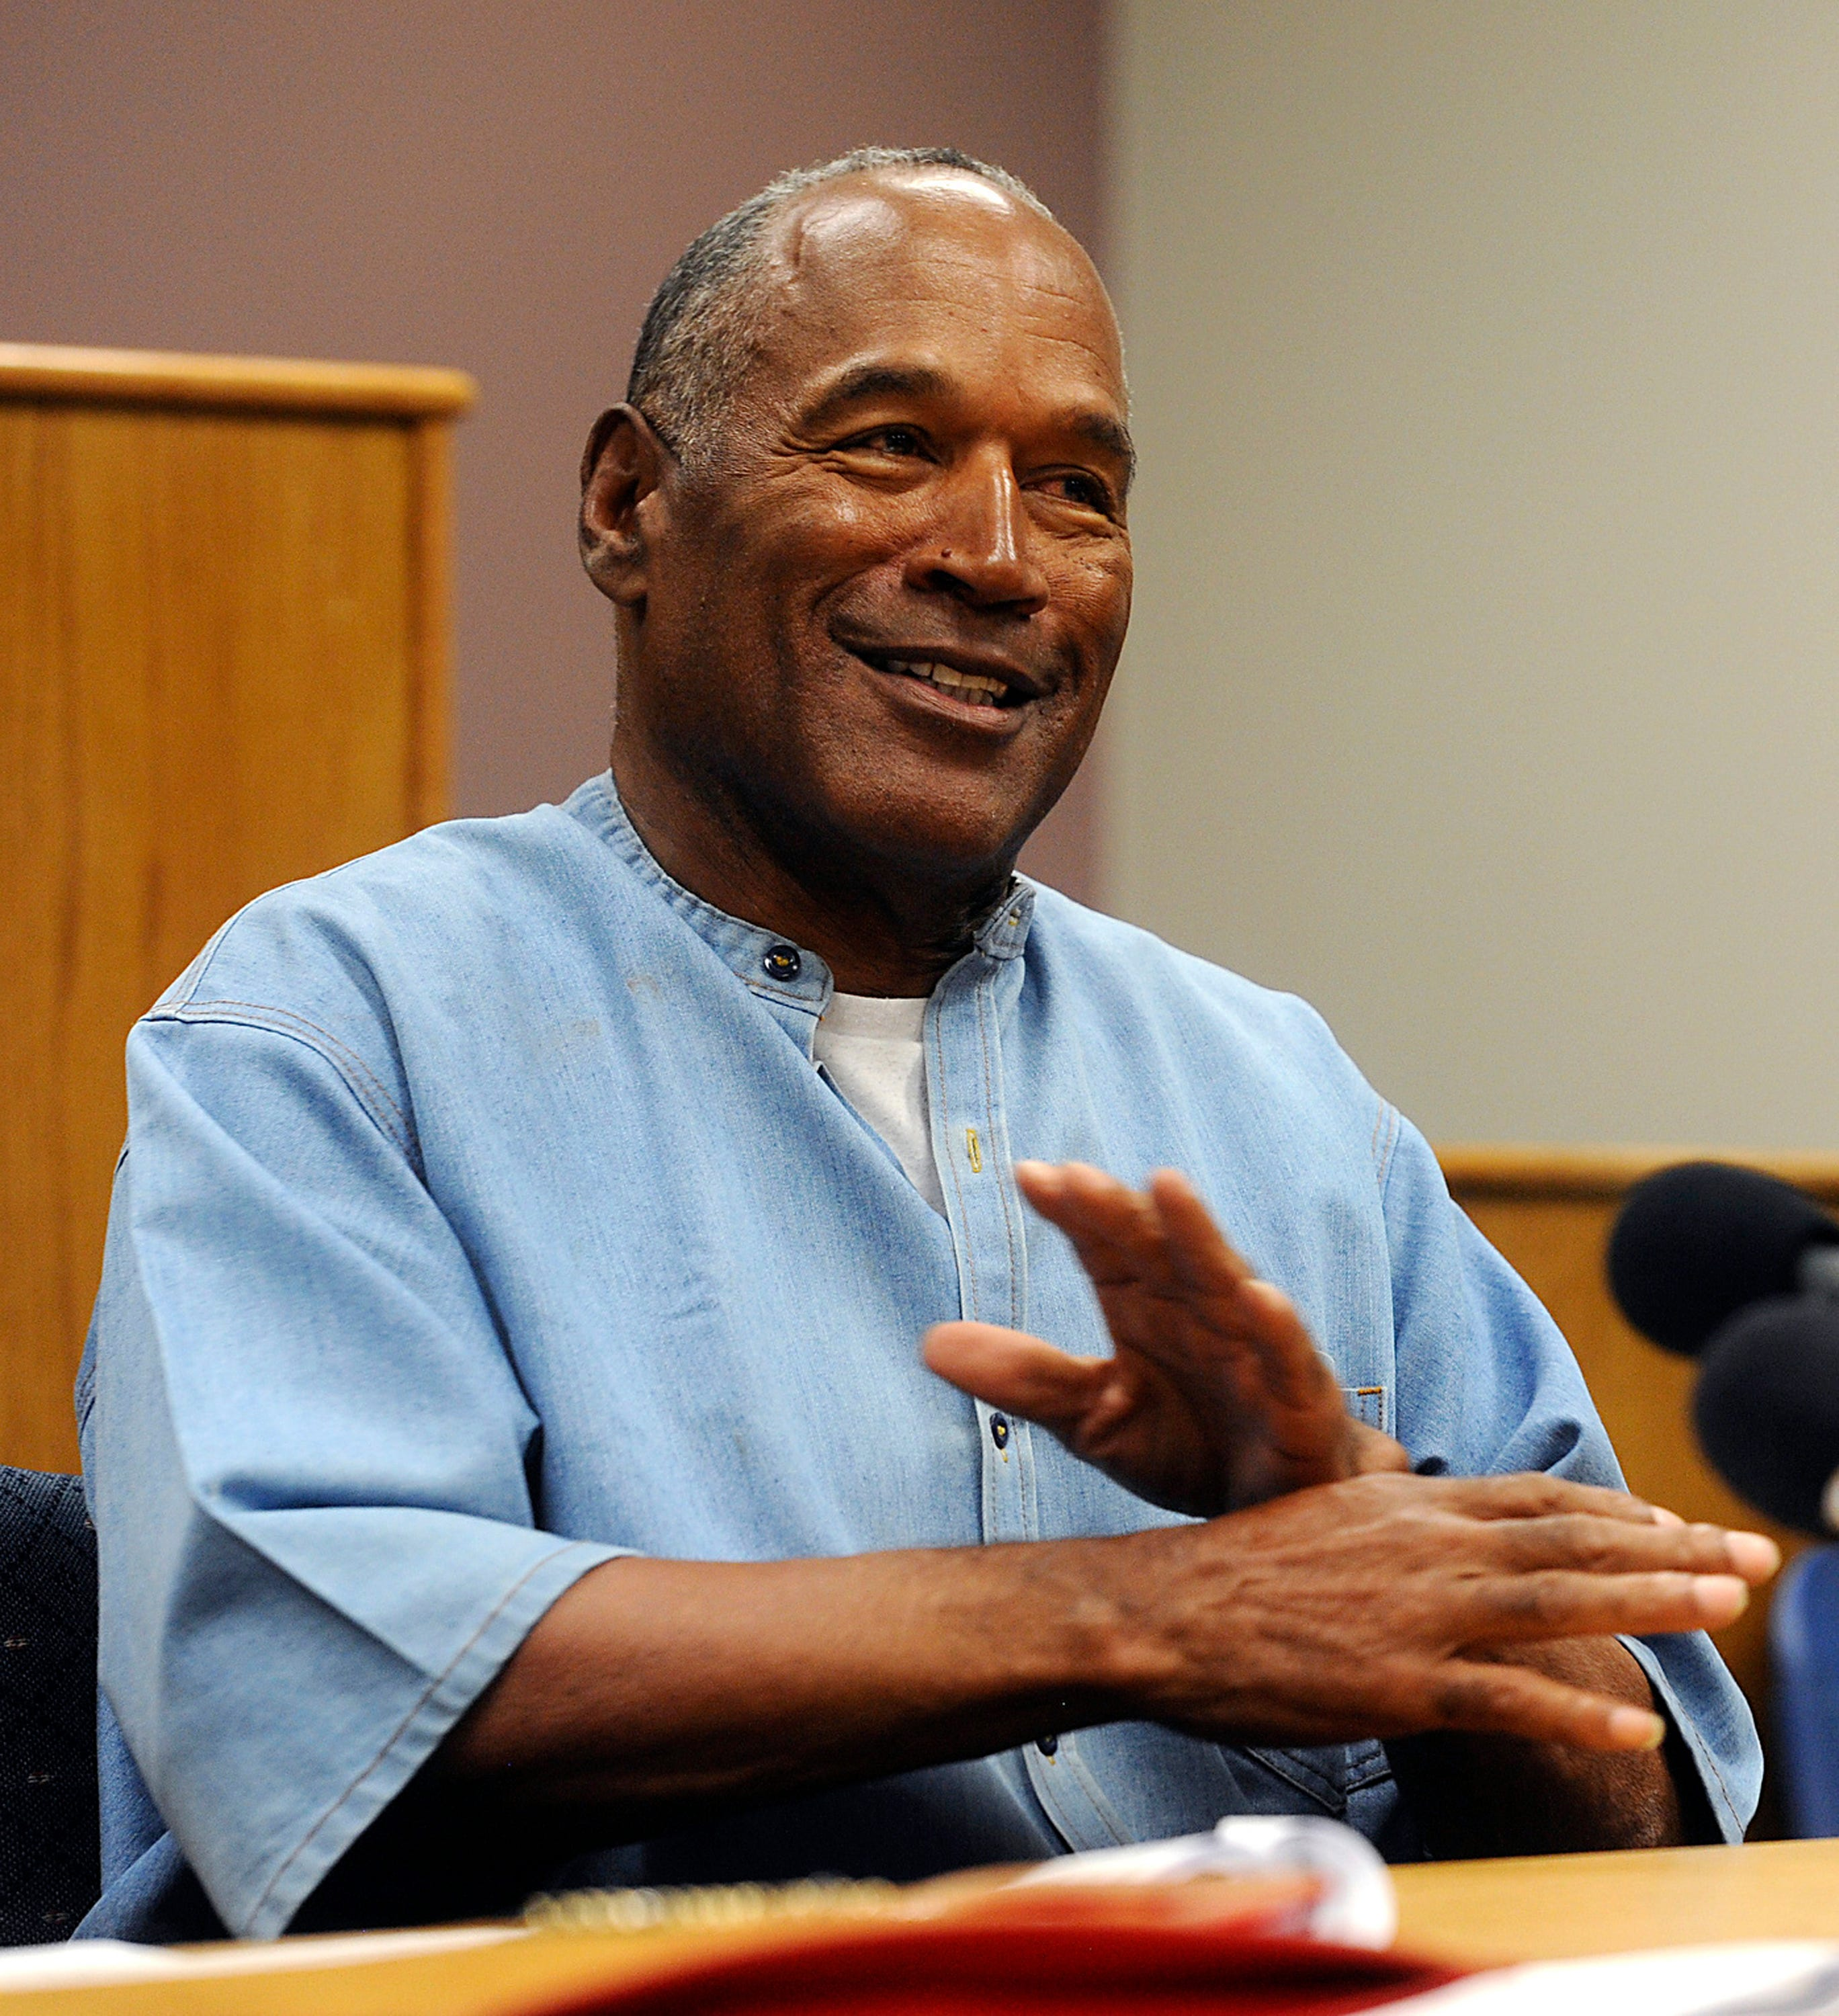 If OJ Simpson Got Arrested For Armed Robbery, Here's How it Happened - 2019 year